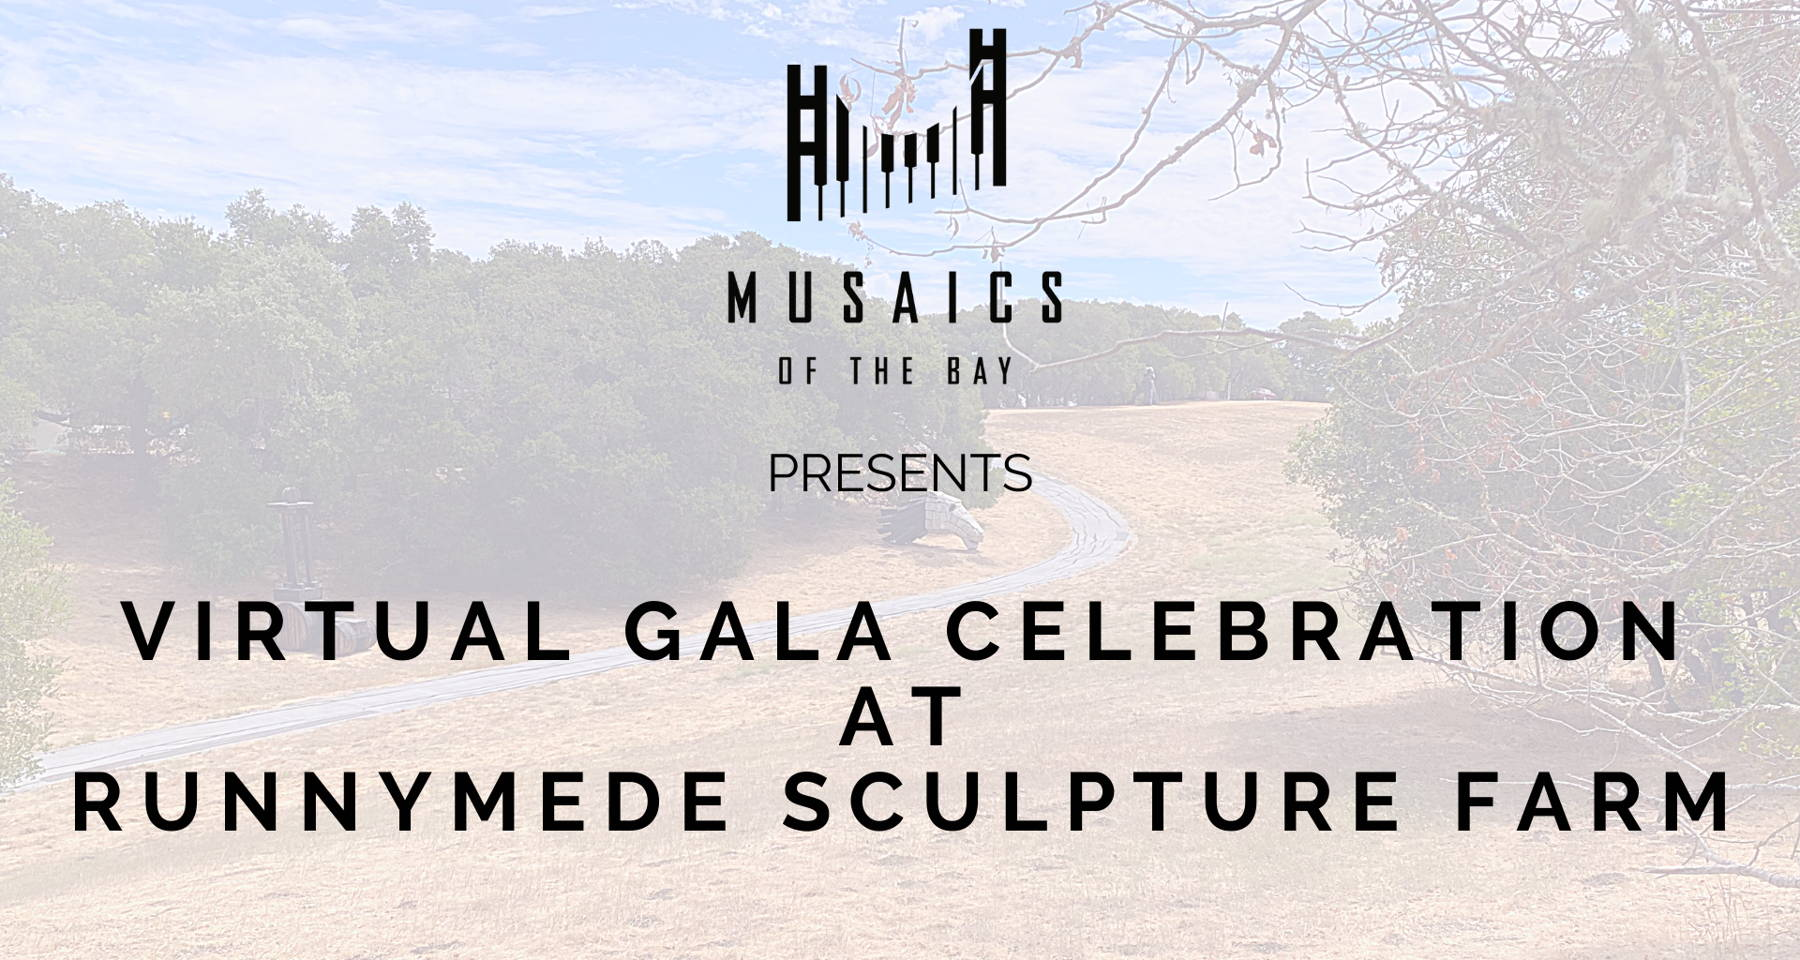 Virtual Gala Celebration at Runnymede Sculpture Farm: Works for One, Two and Three Cellos